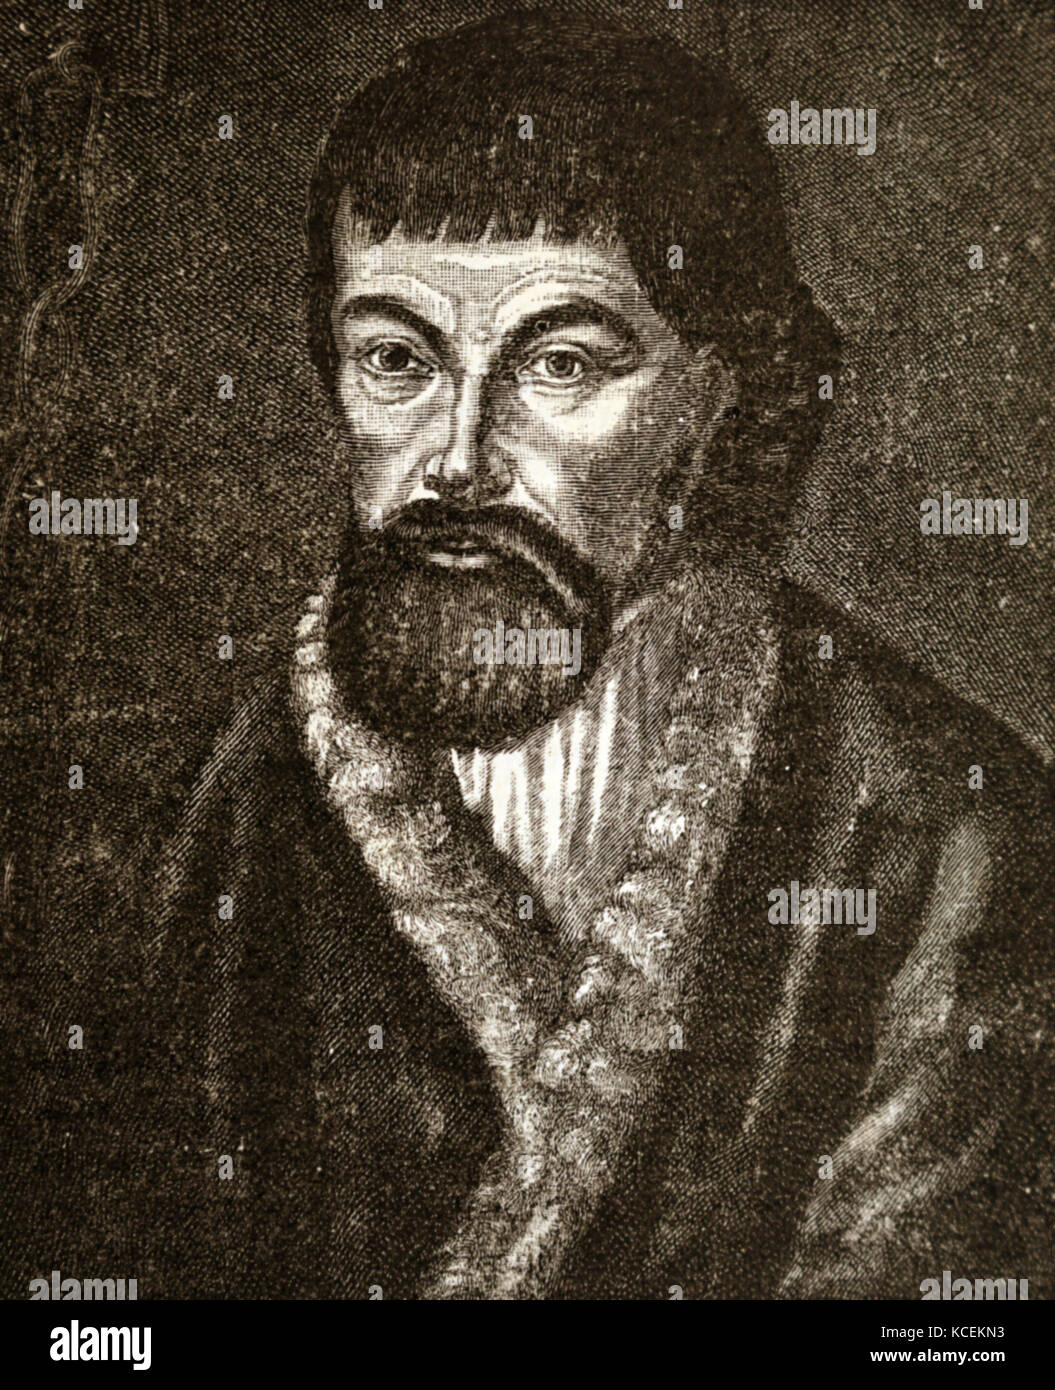 Engraved portrait of Yemelyan Pugachev (1742-1775) a pretender to the Russian throne. Dated 18th Century - Stock Image